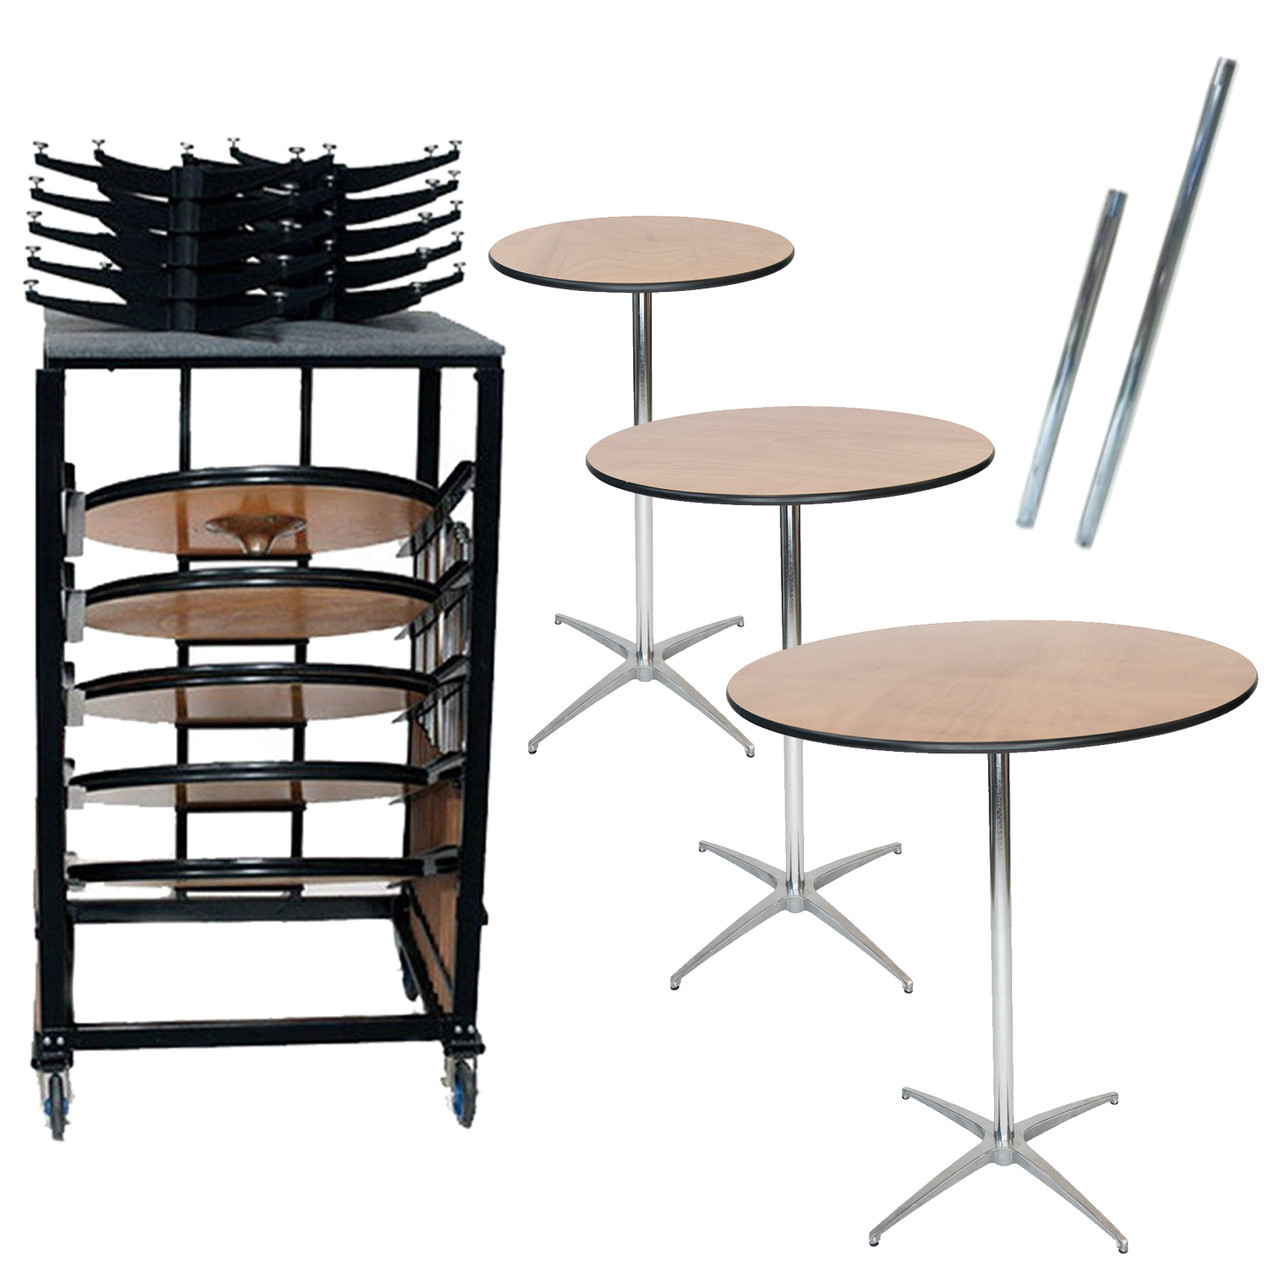 10 classic series round wood cocktail table bundle 10 tables 30 42 height poles and transport cart